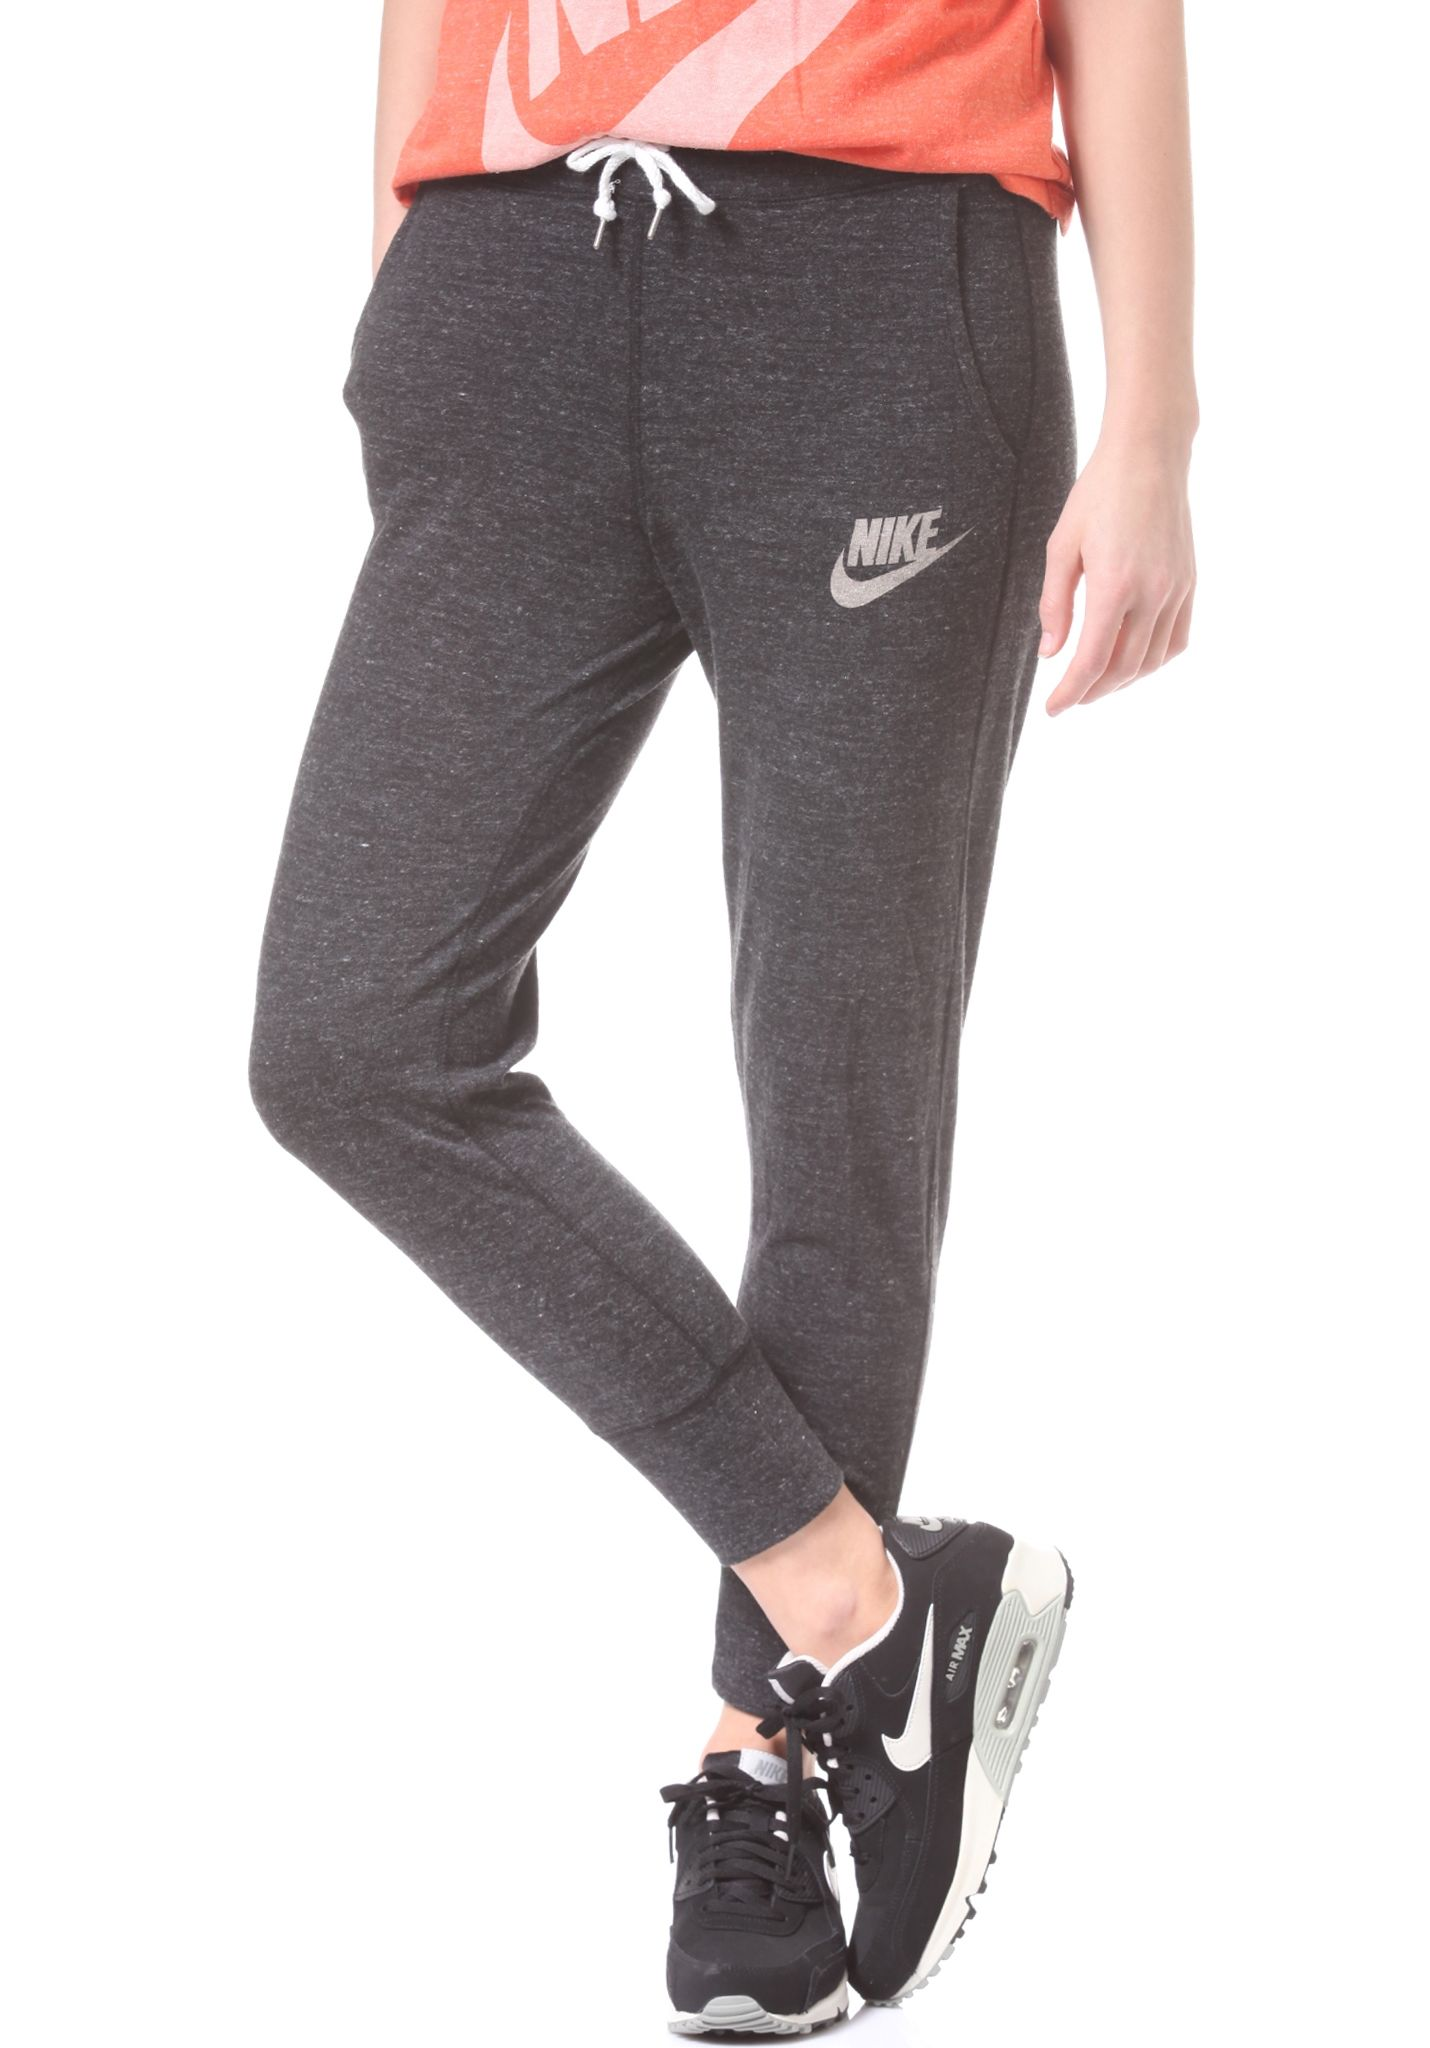 NIKE SPORTSWEAR Gym Vintage - Trackpants for Women - Black - Planet Sports 0225f4a8a34